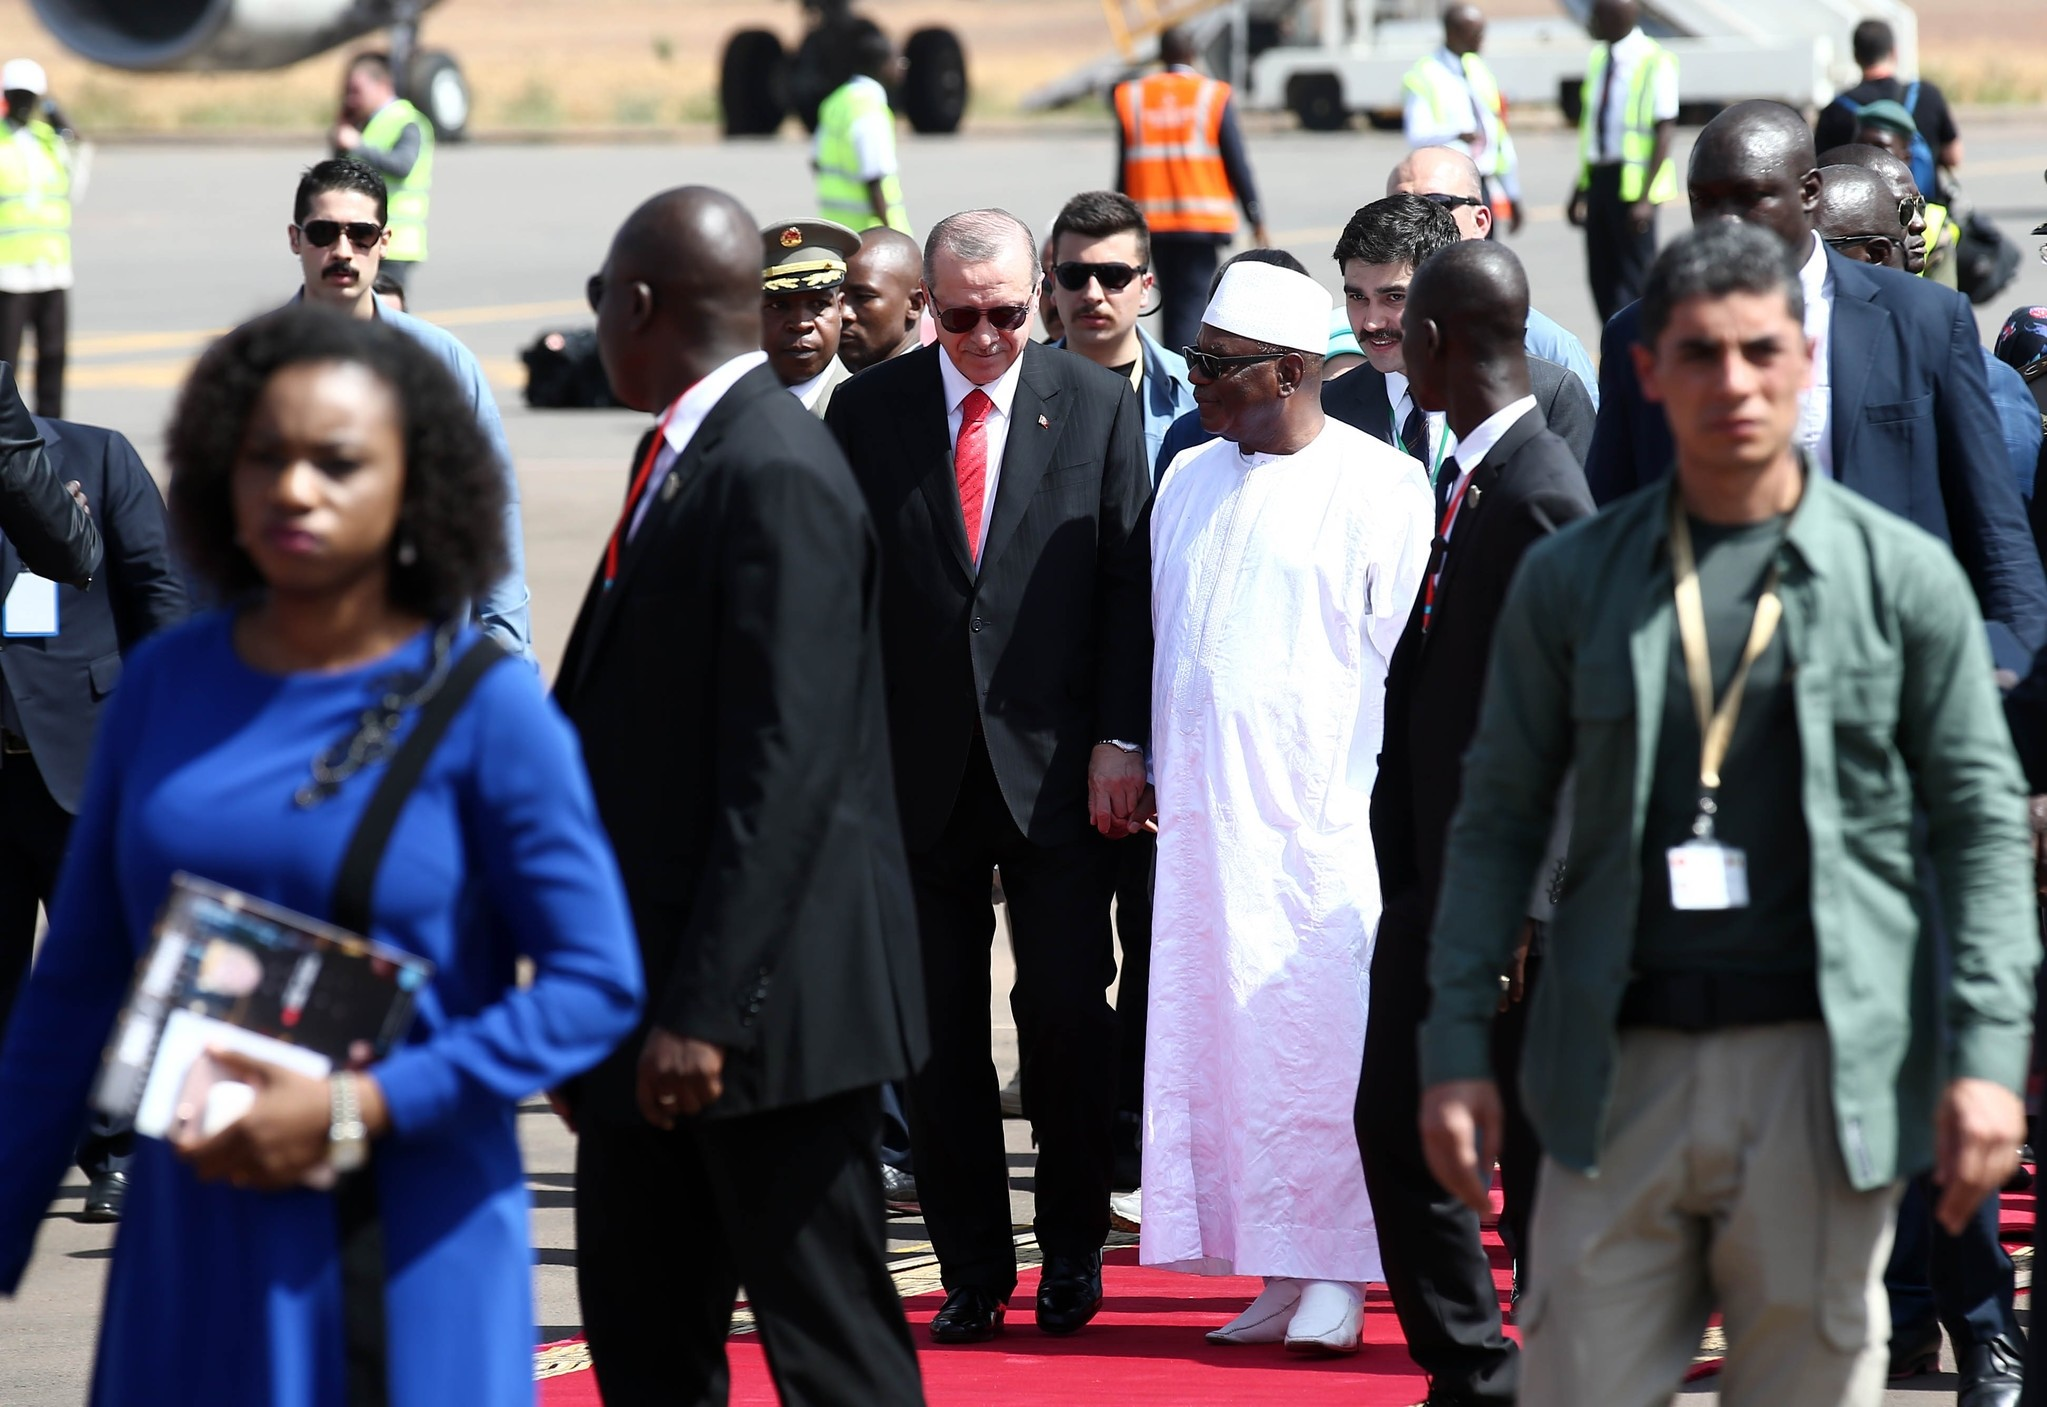 President Erdou011fan and Malian President Keita walk after Erdou011fanu2019s arrival at Bamako airport as part of his diplomatic visits to four African countries, Mali, March 2.